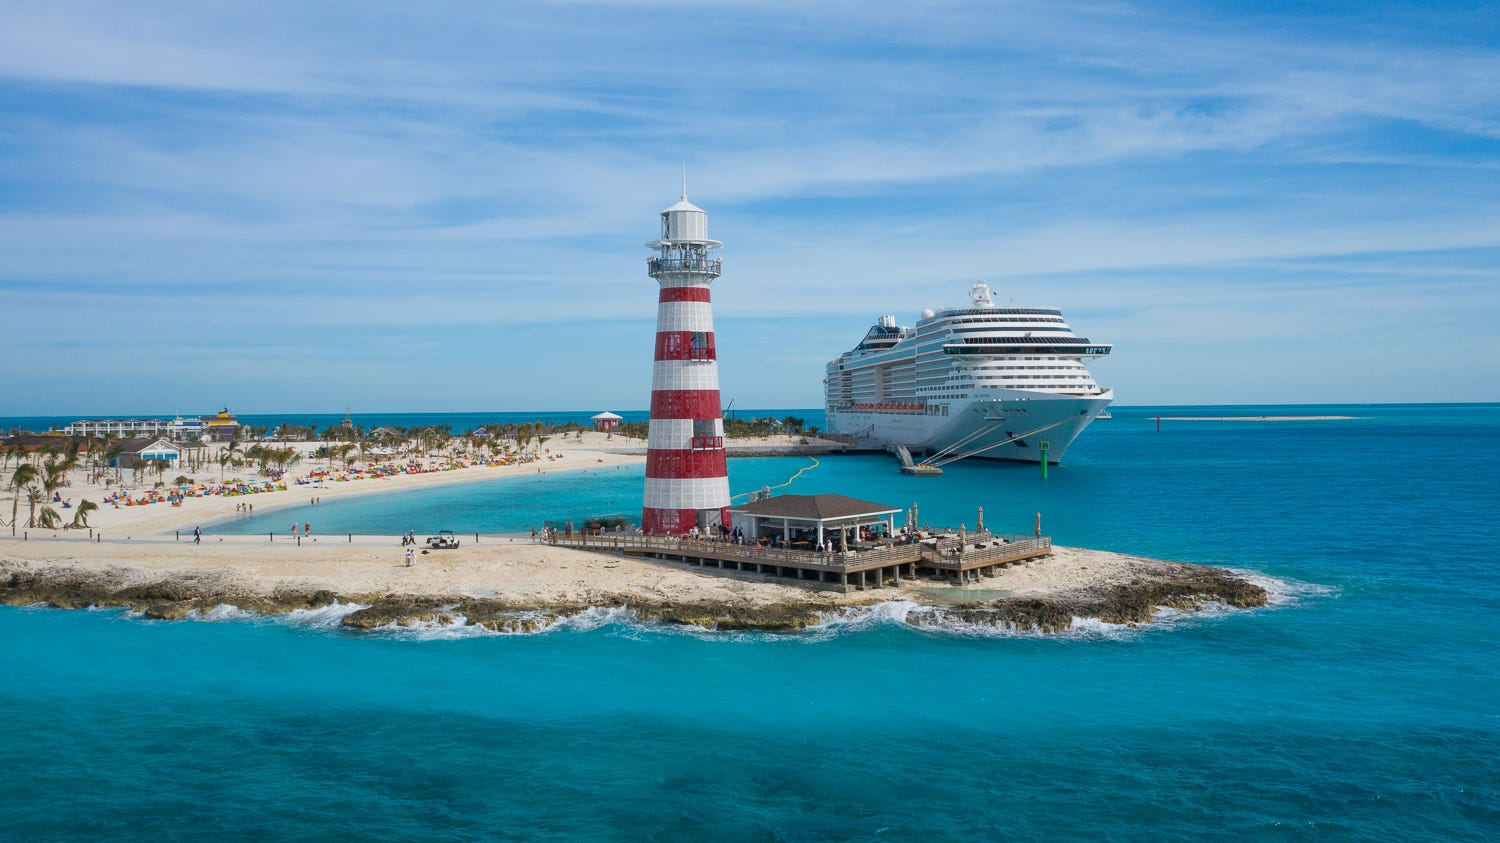 Cruise lines are enhancing their private island amenities and their passengers are winning